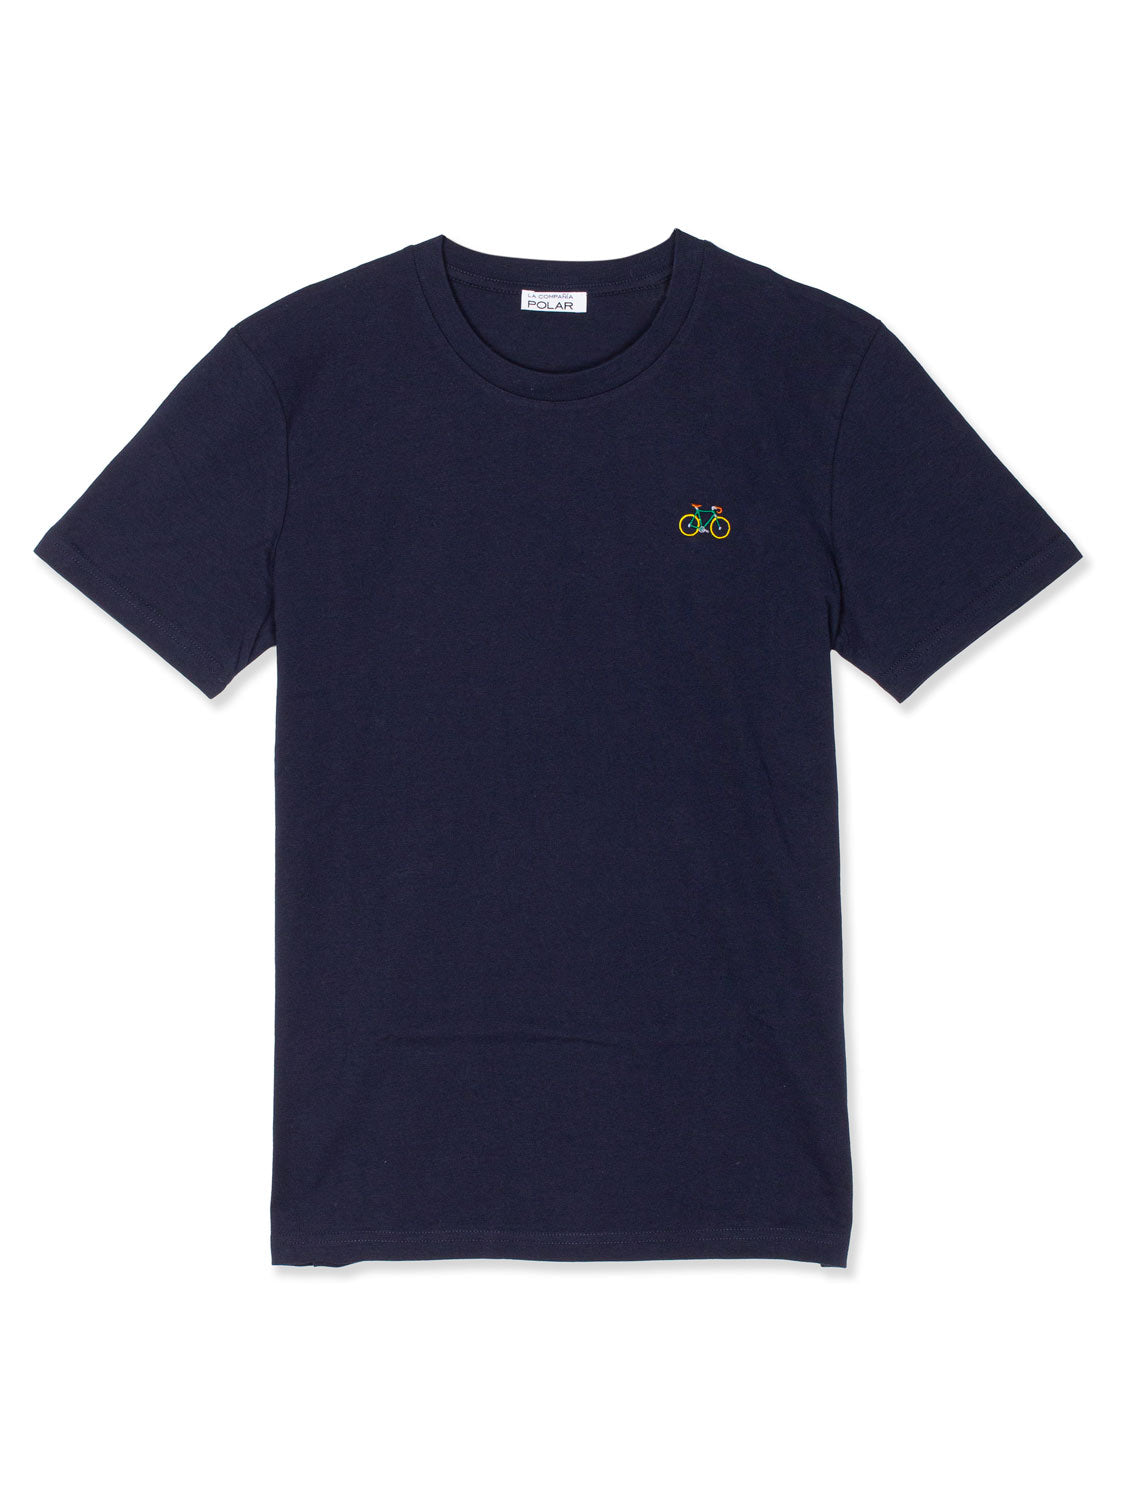 BIKE T-SHIRT NAVY